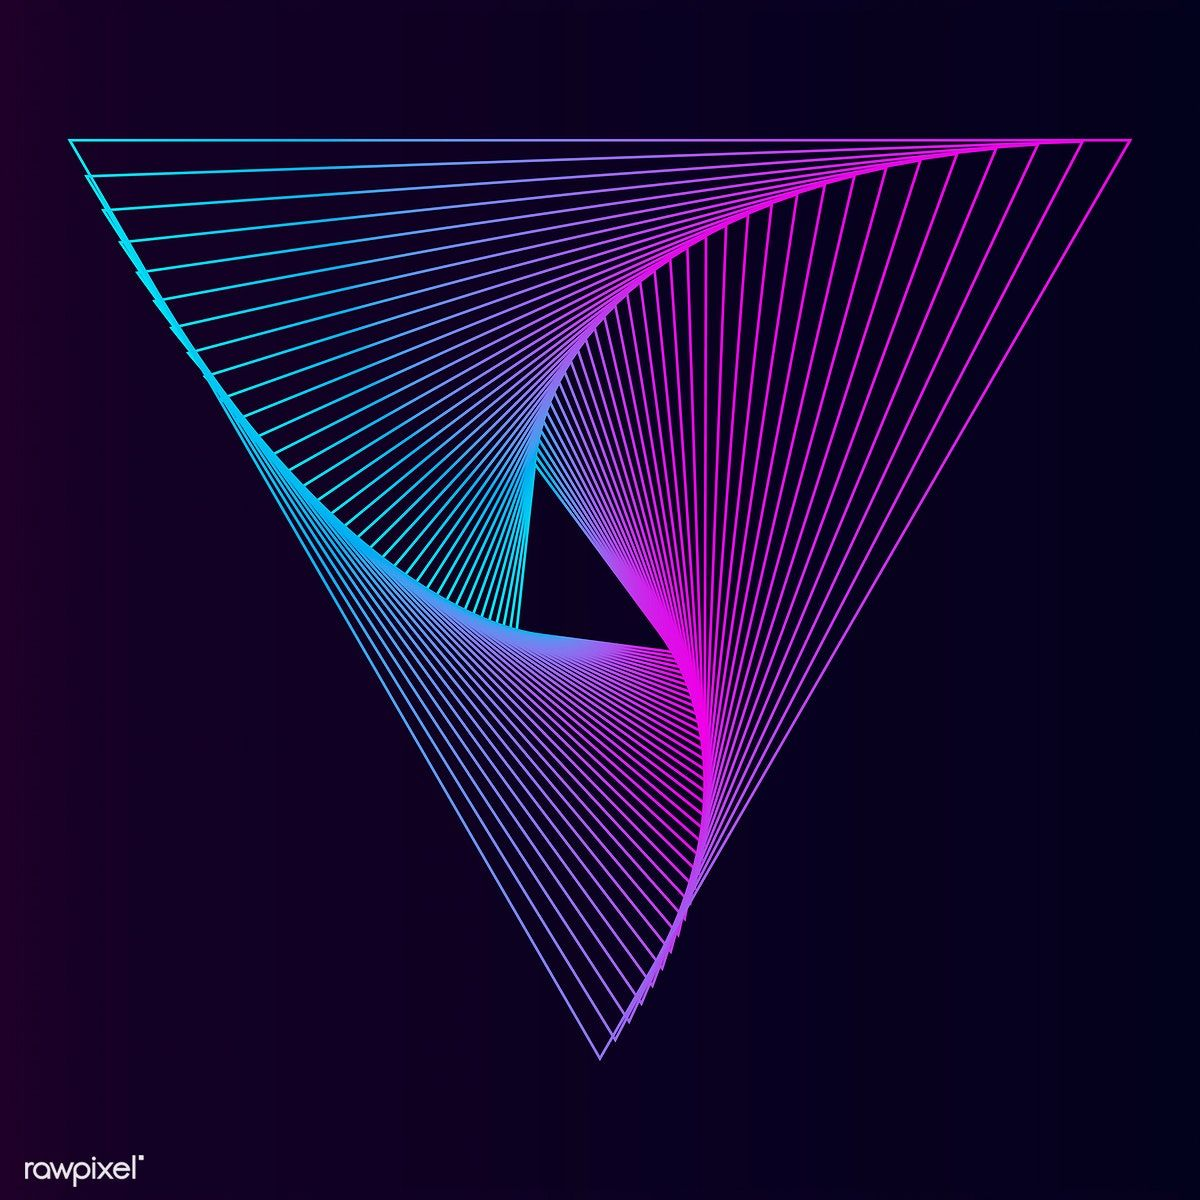 Abstract dynamic pattern wallpaper vector free image by rawpixel also rh in pinterest